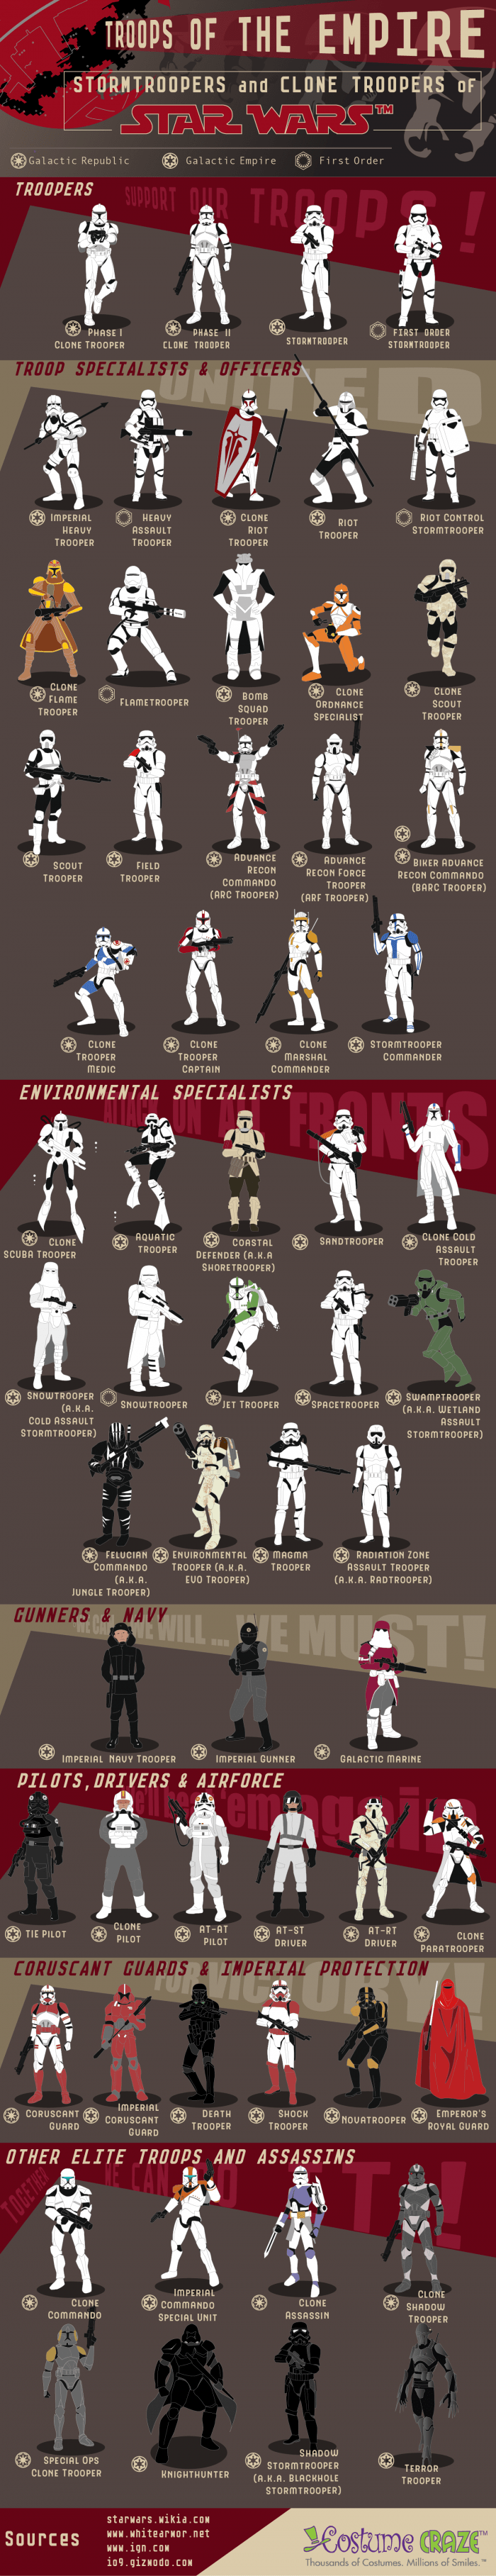 Infogrpahic about all different stormtrooper designs and uniforms.